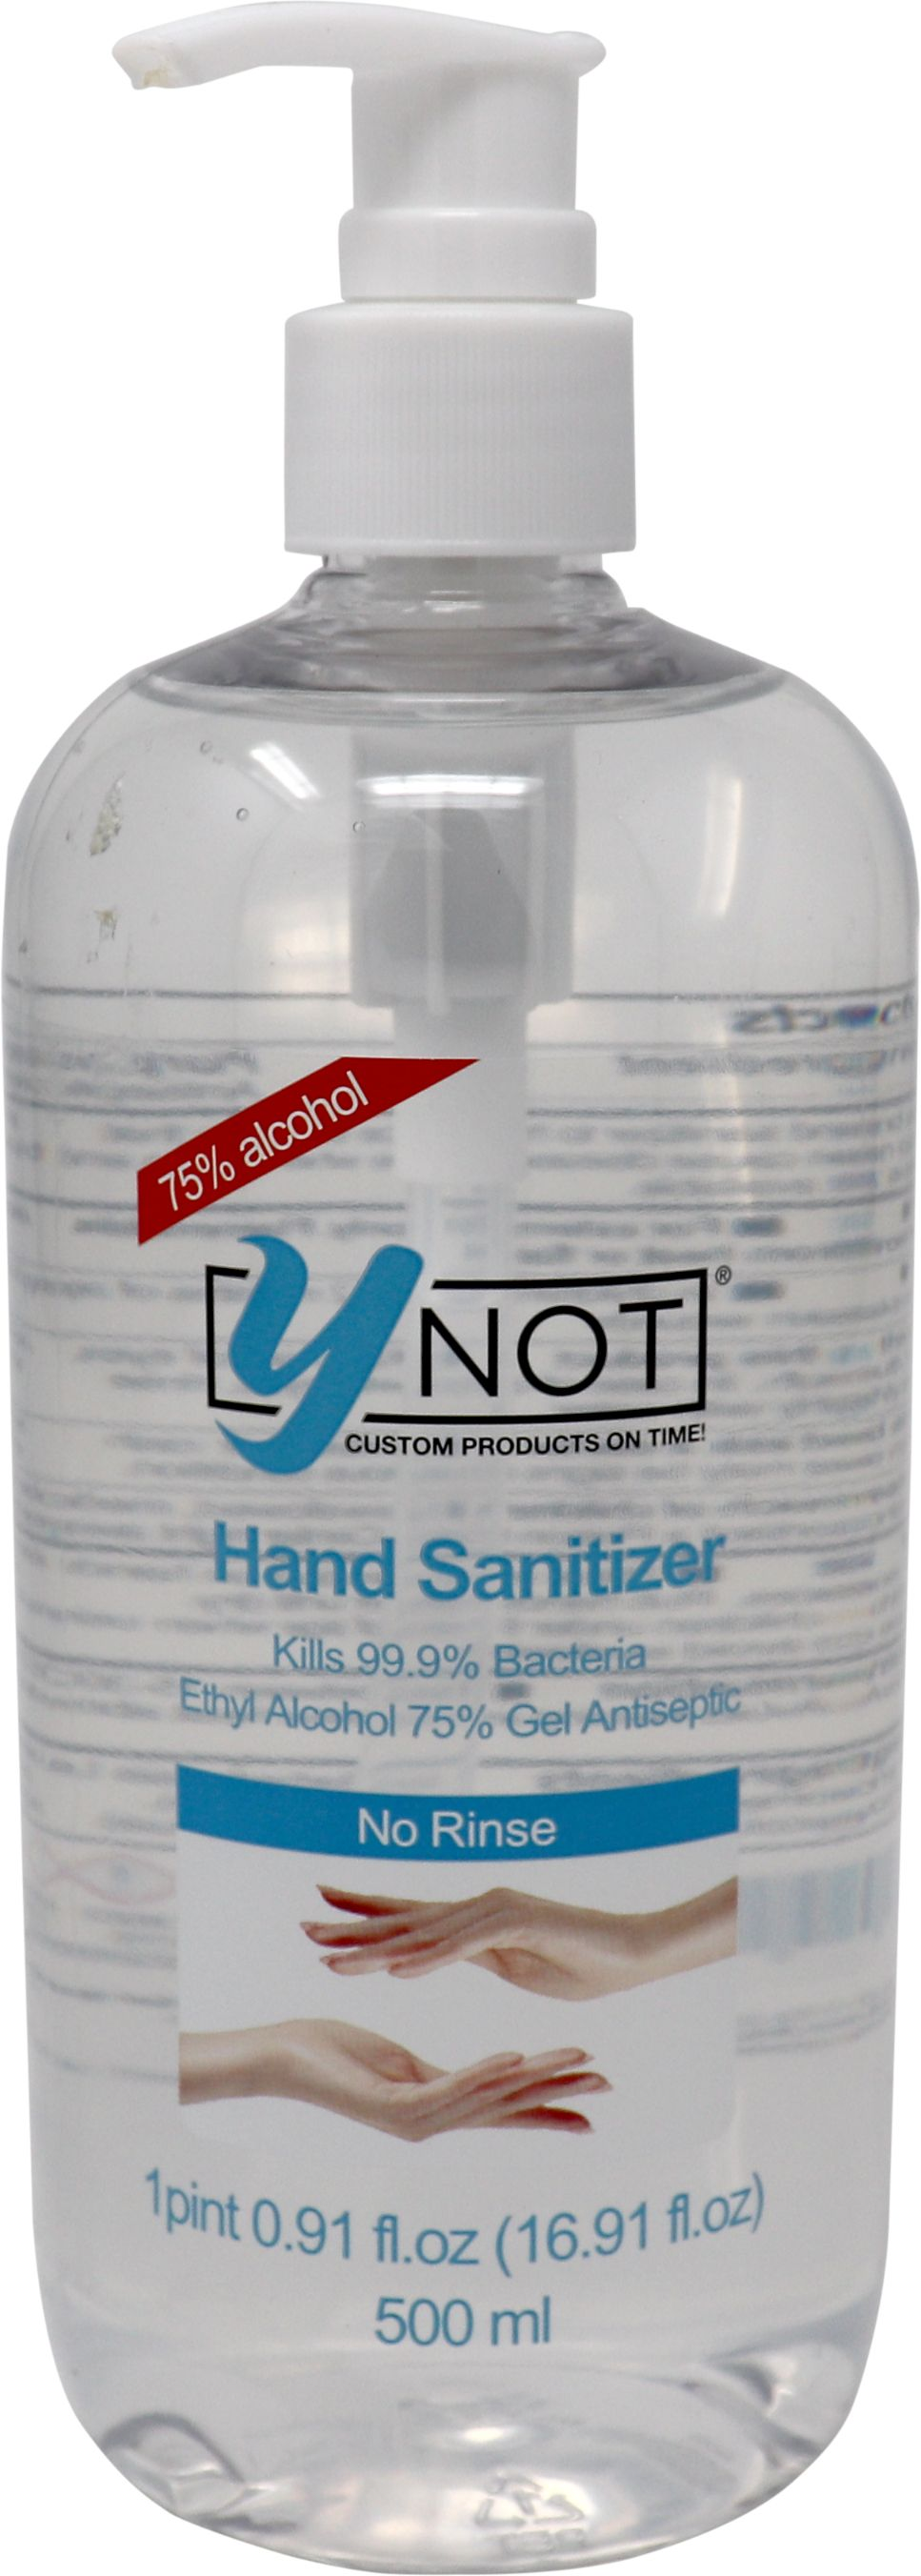 Hand Sanitizer - 500 ML $3.43 ea (Pack of 24)